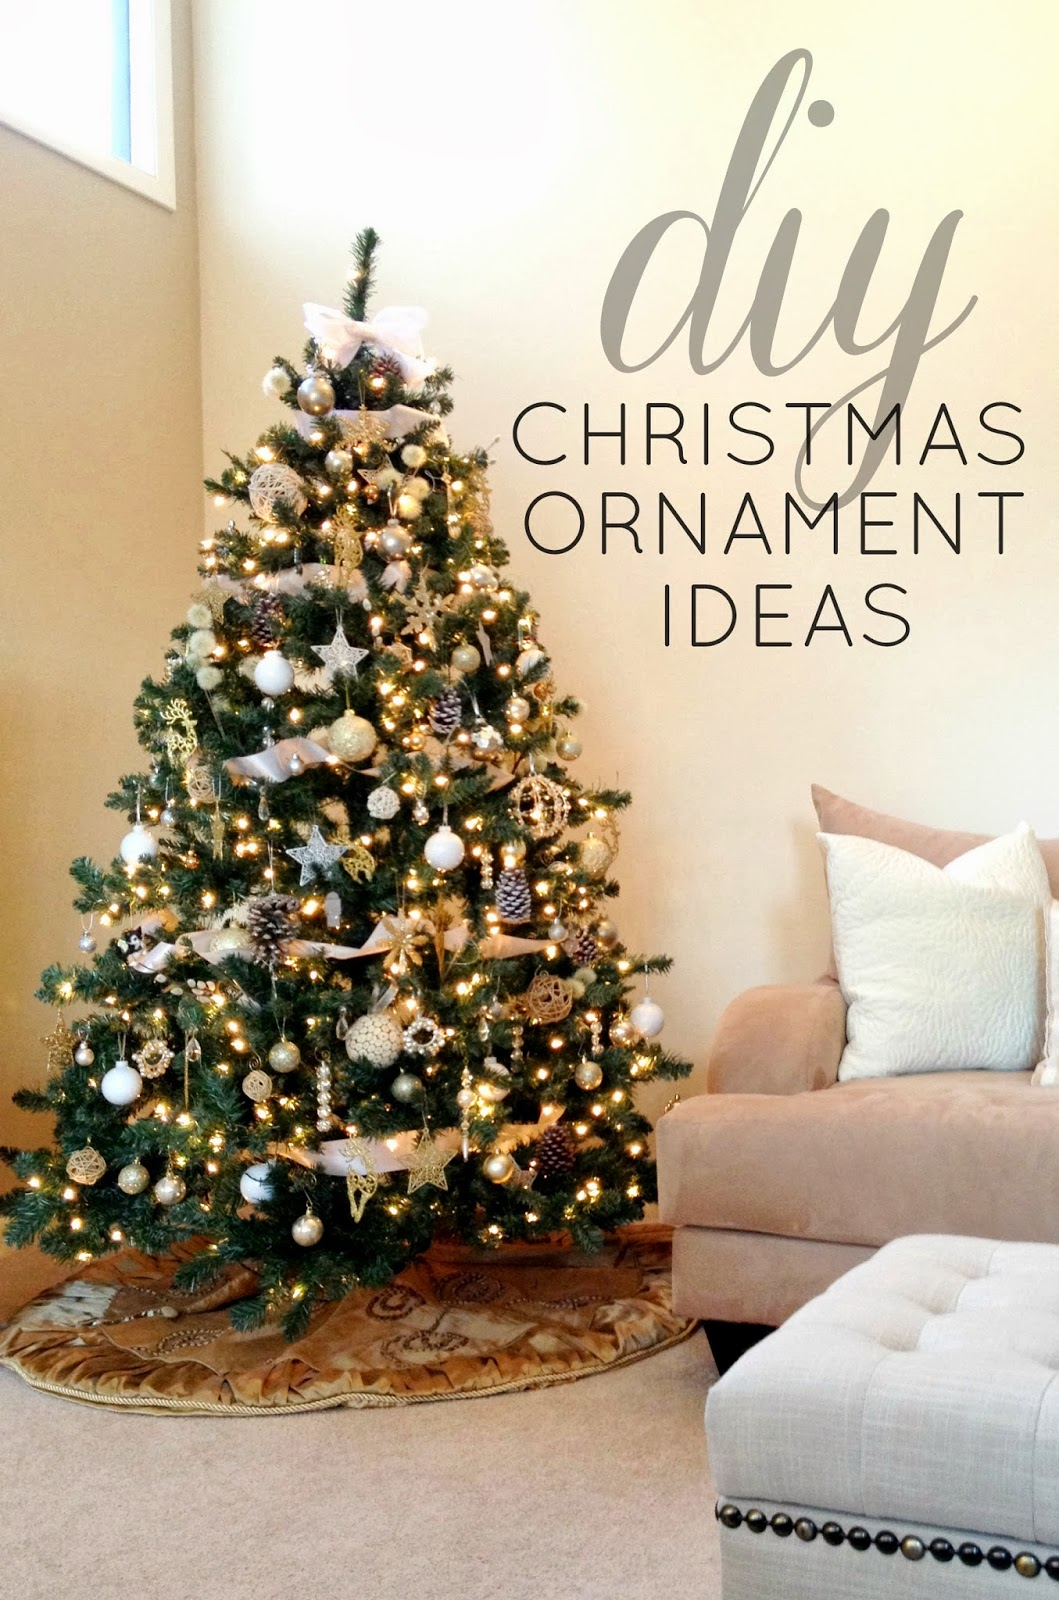 Livelovediy Diy Christmas Ornaments Ideas. Library Christmas Decorations Pinterest. German Christmas Tree Ornaments Uk. Christmas Decorations For Yard. Unusual Christmas Ornaments To Make. Sauganash Chicago Christmas Decorations. Christmas Decorating Services Dallas. Ideas For Christmas Decorations Outside. Christmas Decorations Shops Online